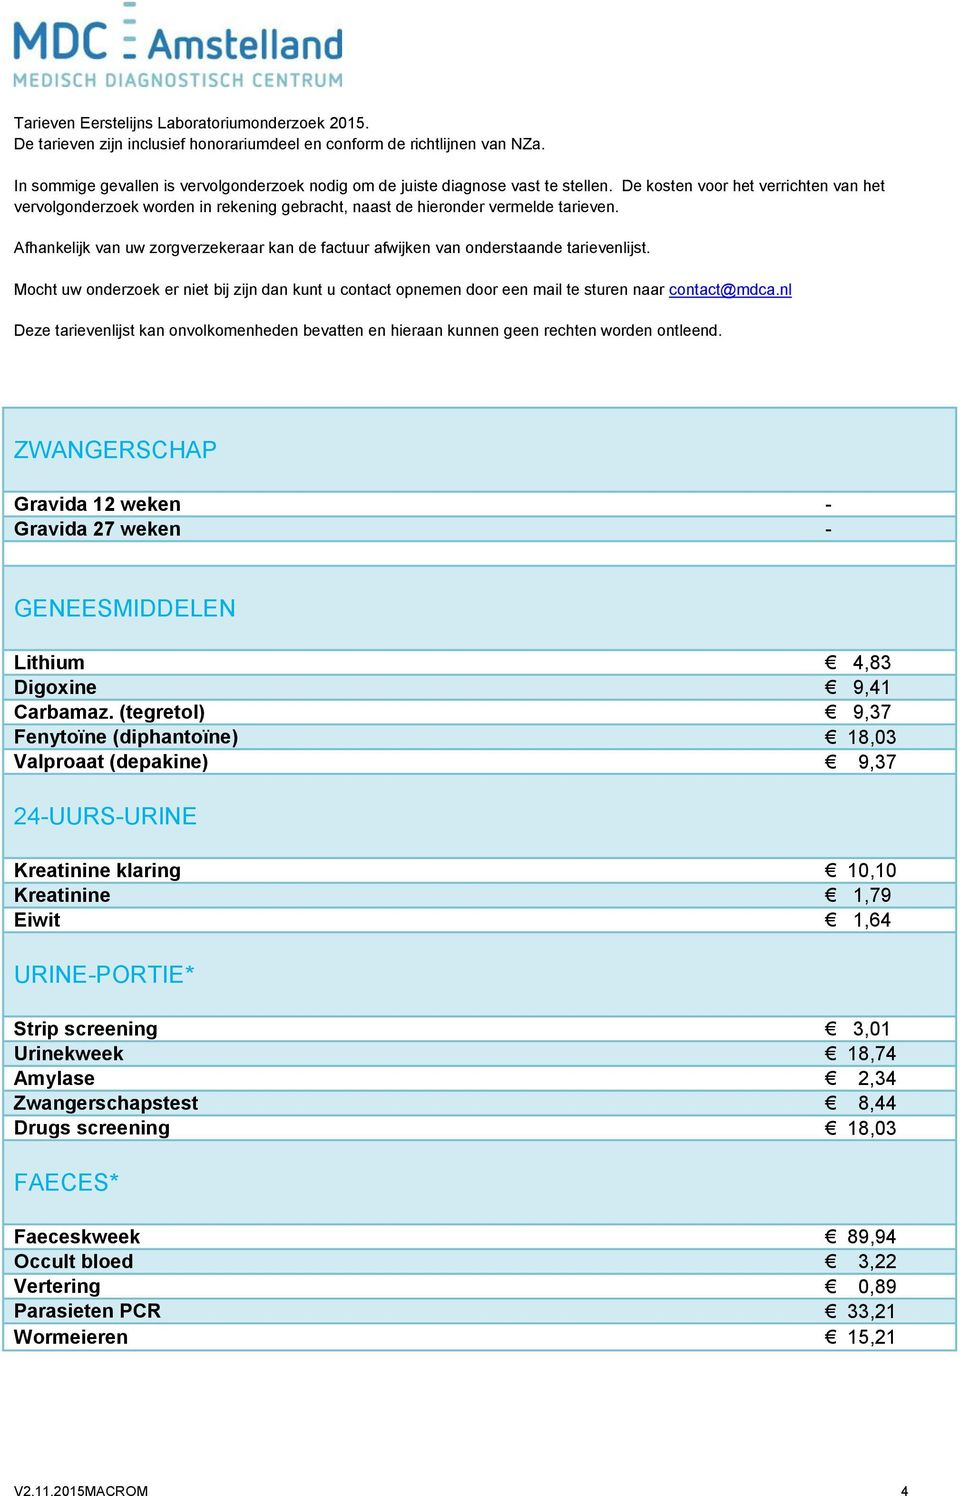 Kreatinine 1,79 Eiwit 1,64 URINE-PORTIE* Strip screening 3,01 Urinekweek Amylase 2,34 Zwangerschapstest 8,44 Drugs